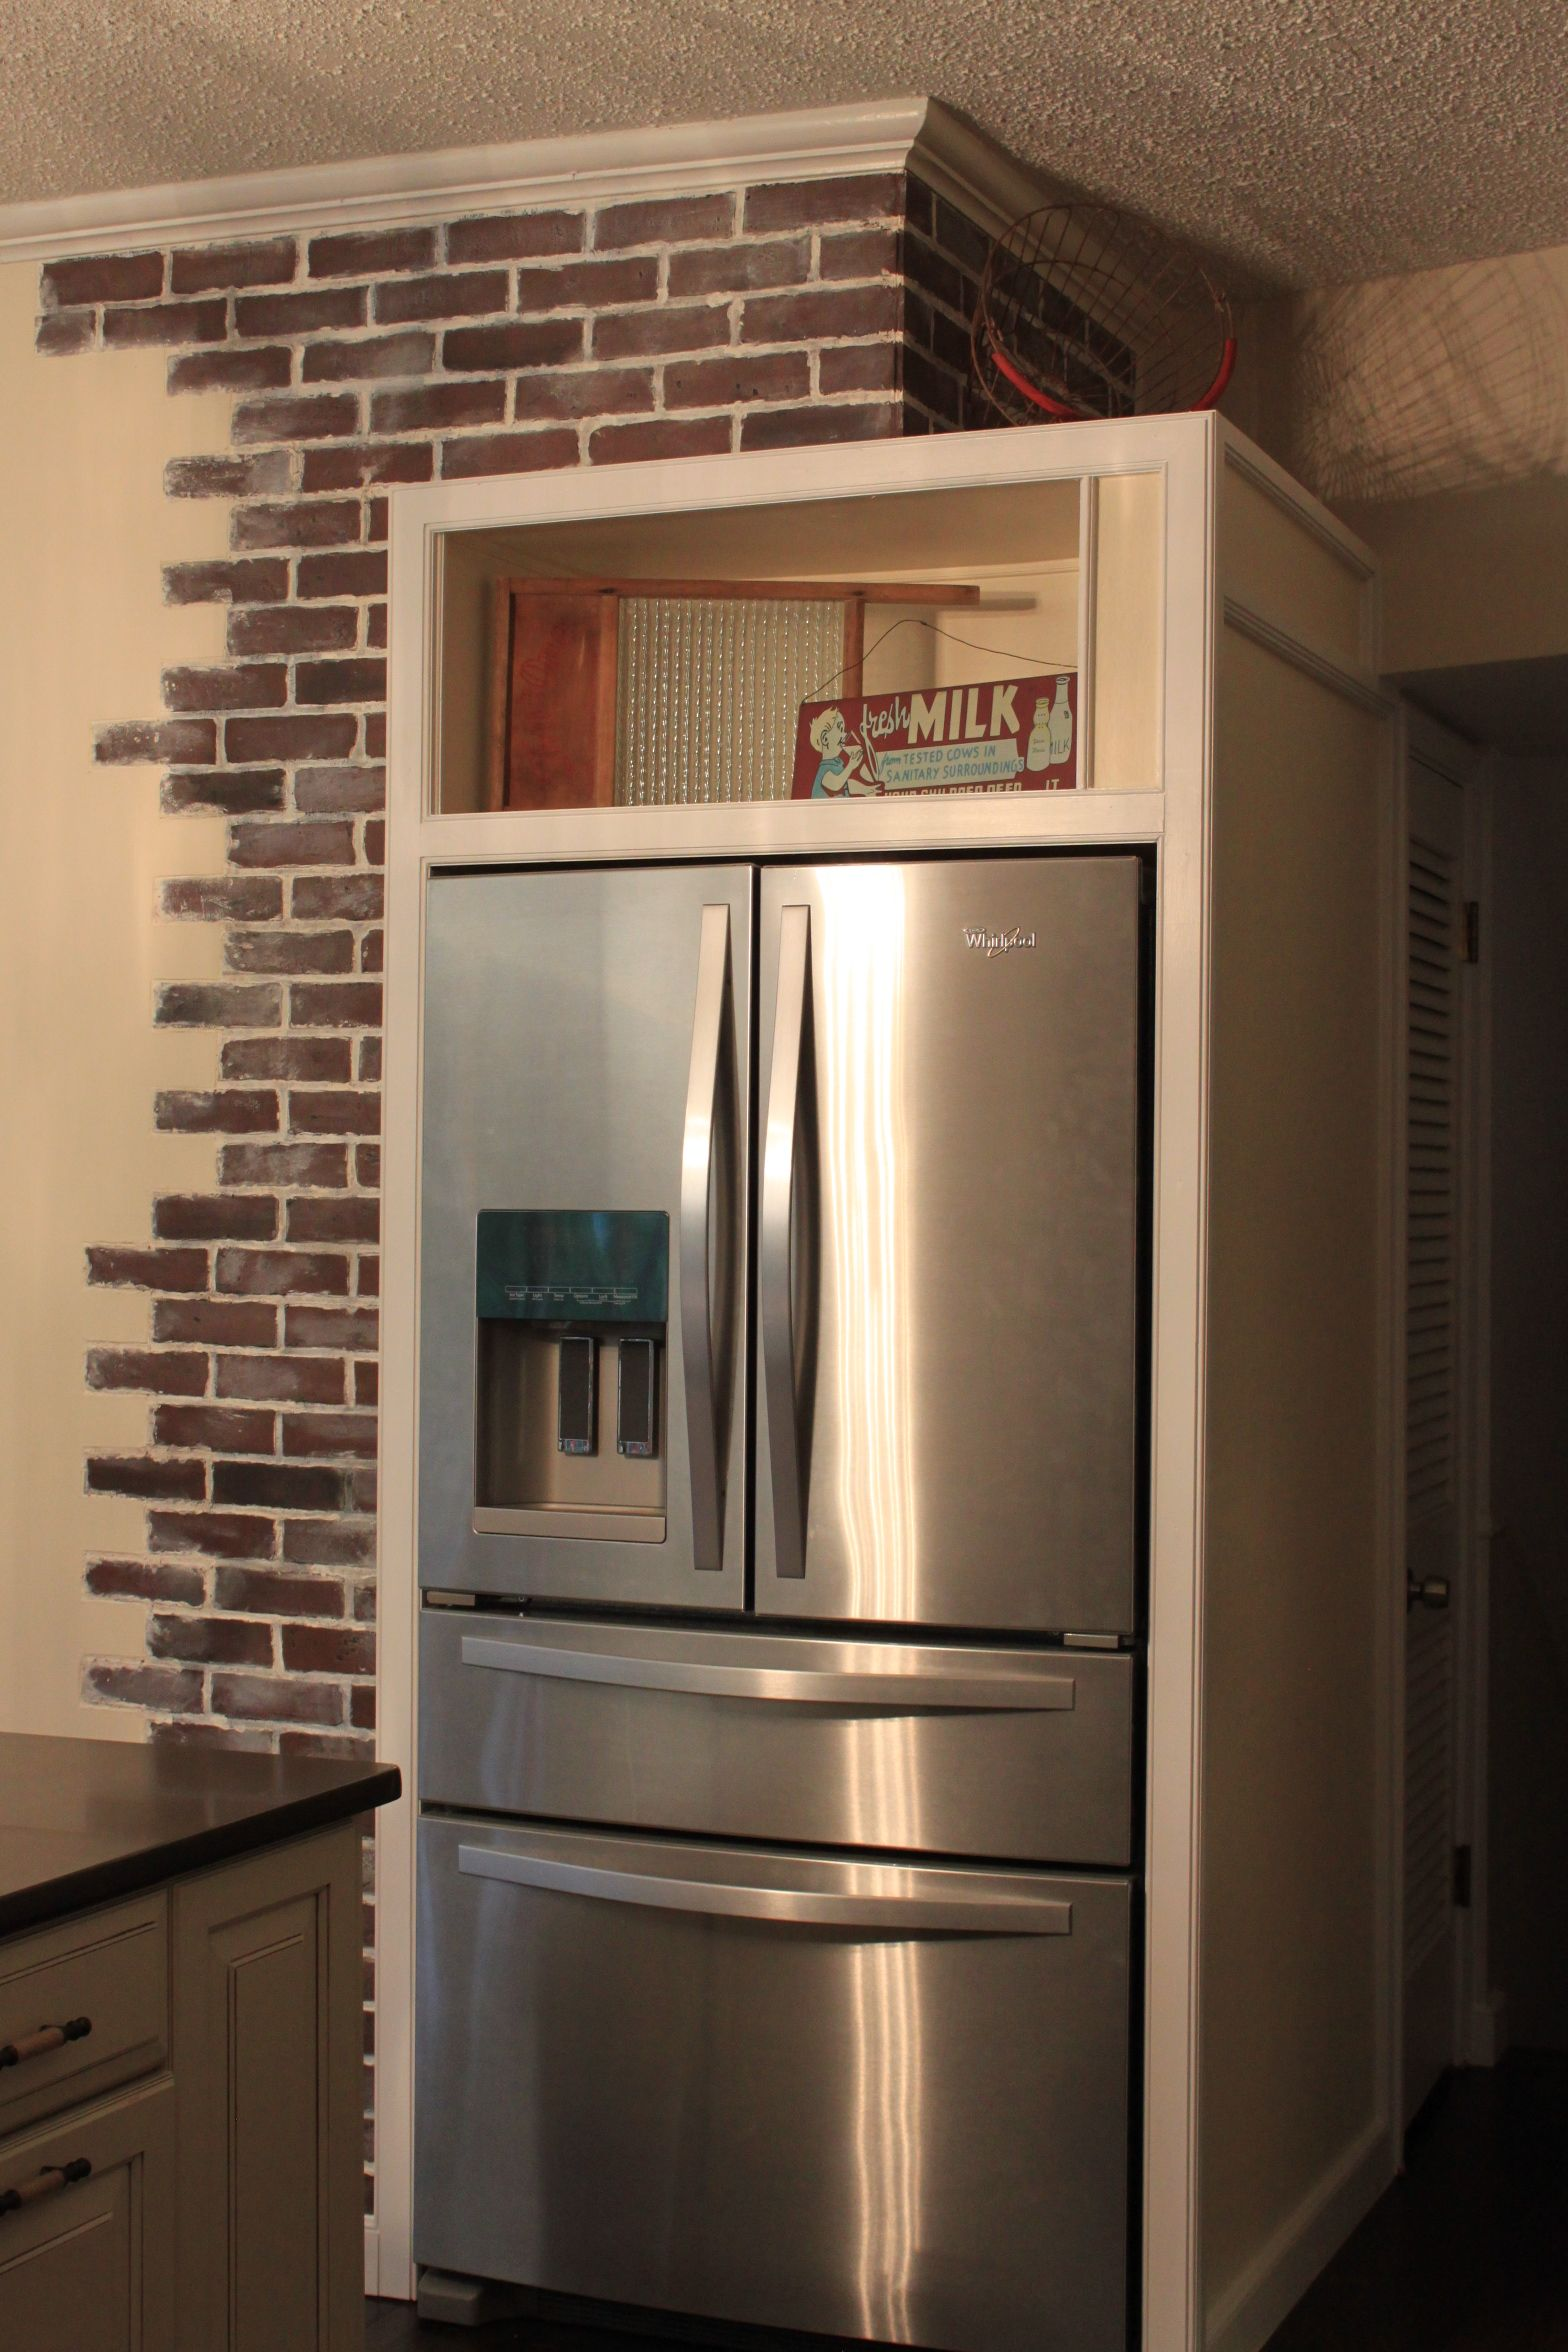 Fridge Was Turned 90 Degrees To Face Into The Kitchen We Had To Patch The Wall After Removing The Giant Sh Faux Brick Panels Brick Paneling Home Depot Bricks